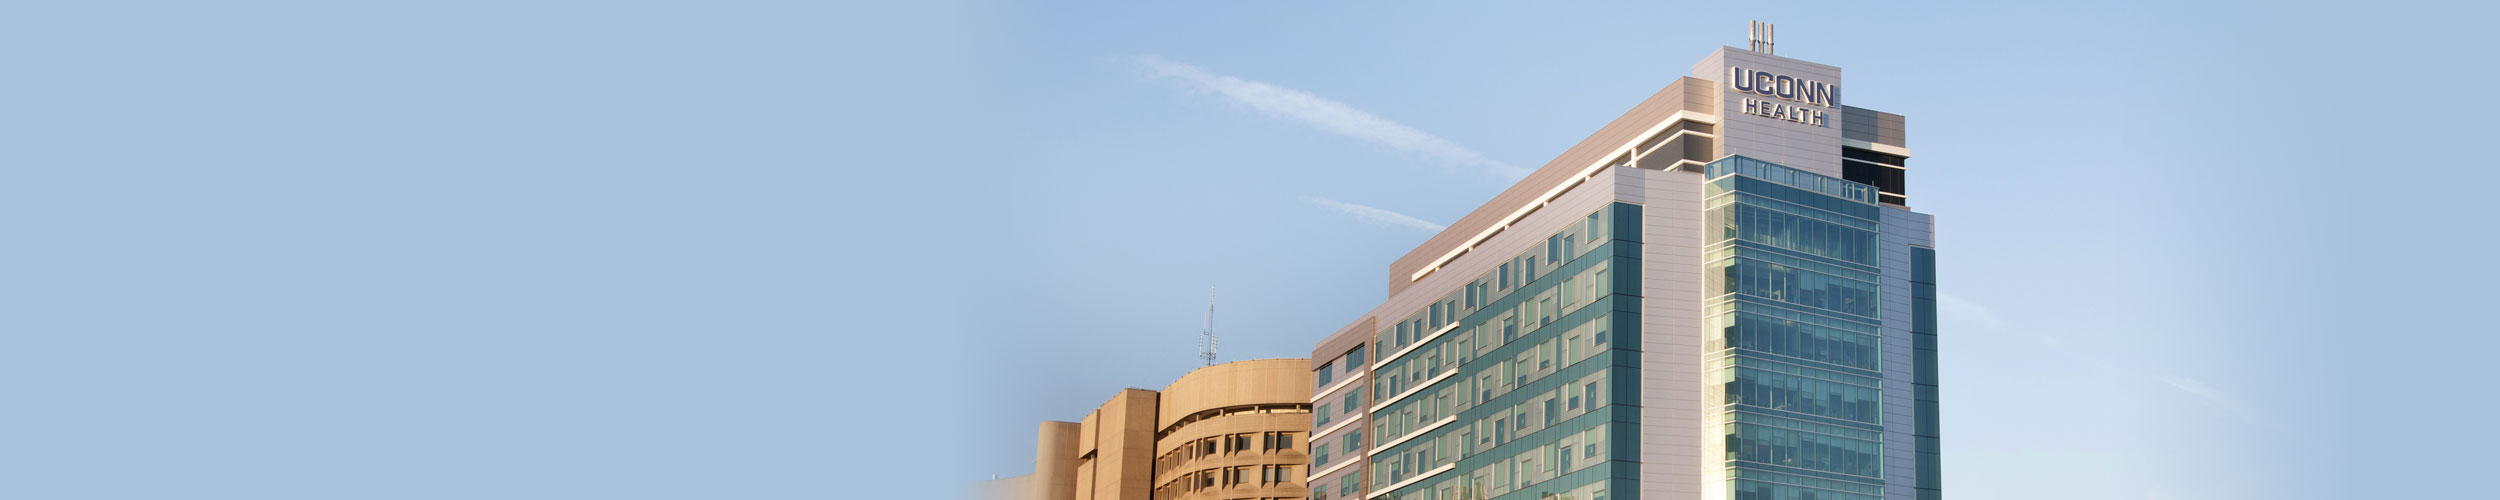 UConn Health University Tower